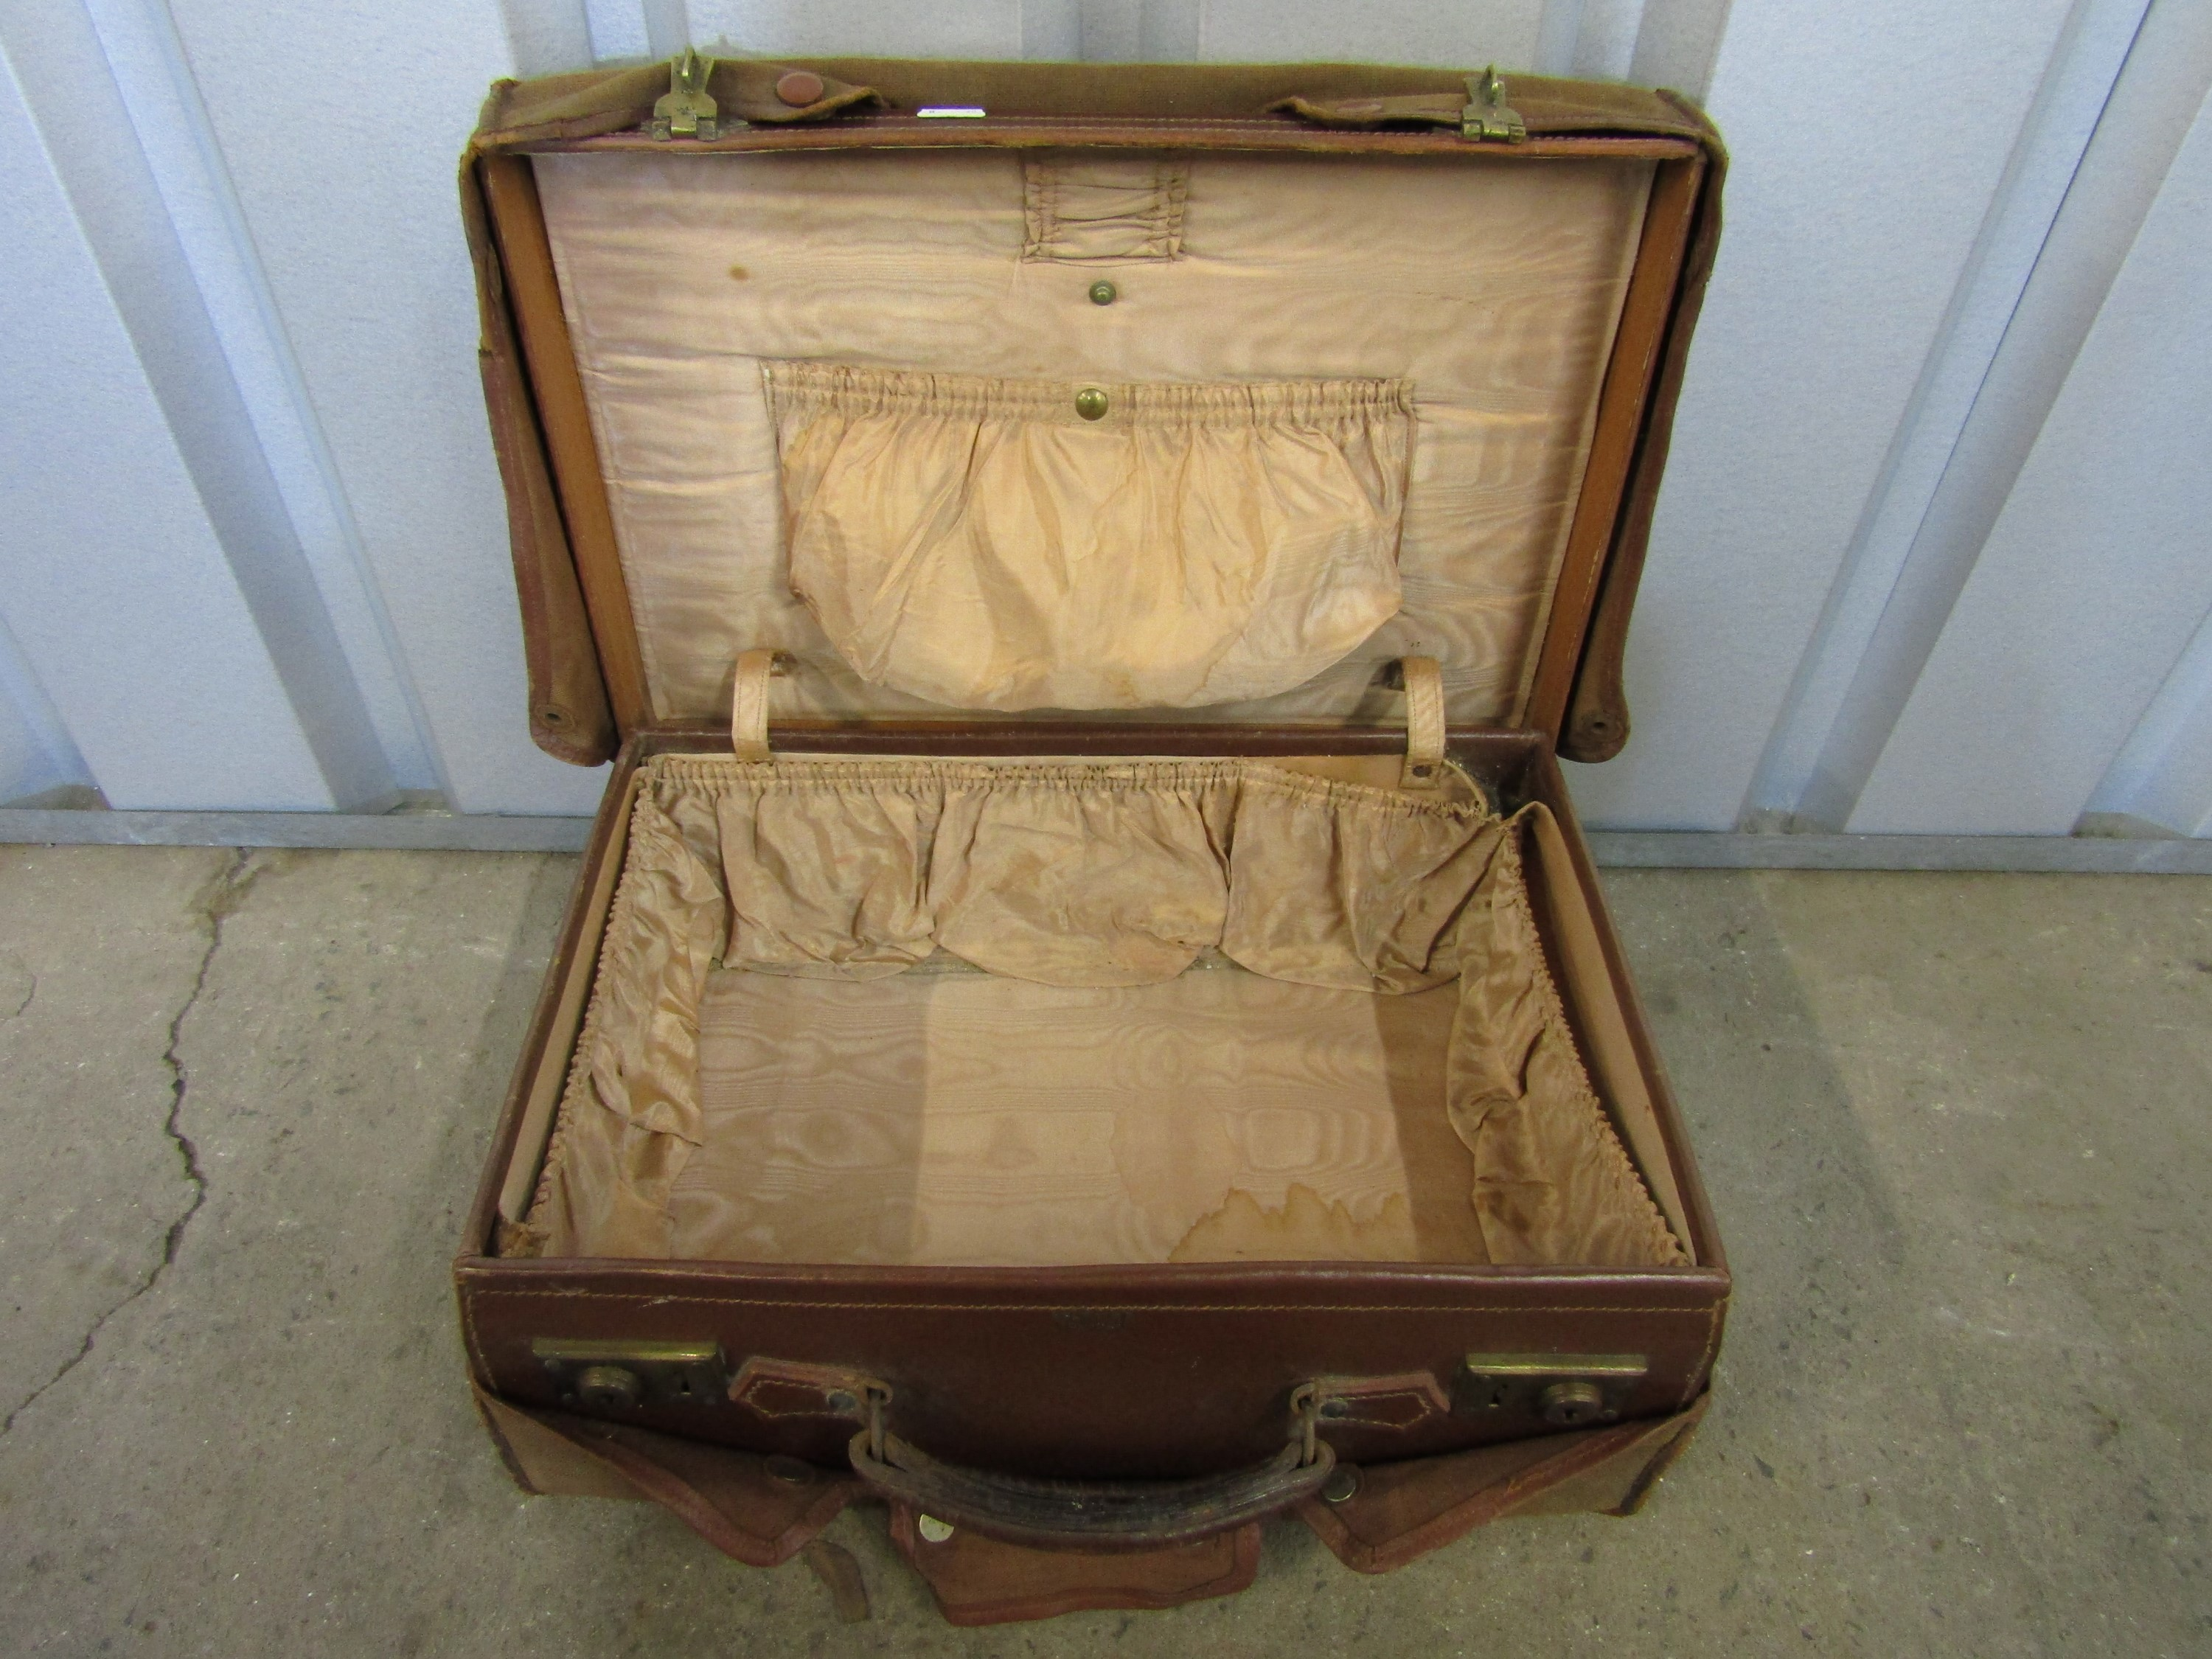 Lot 30 - A vintage leather vanity case with dust cover